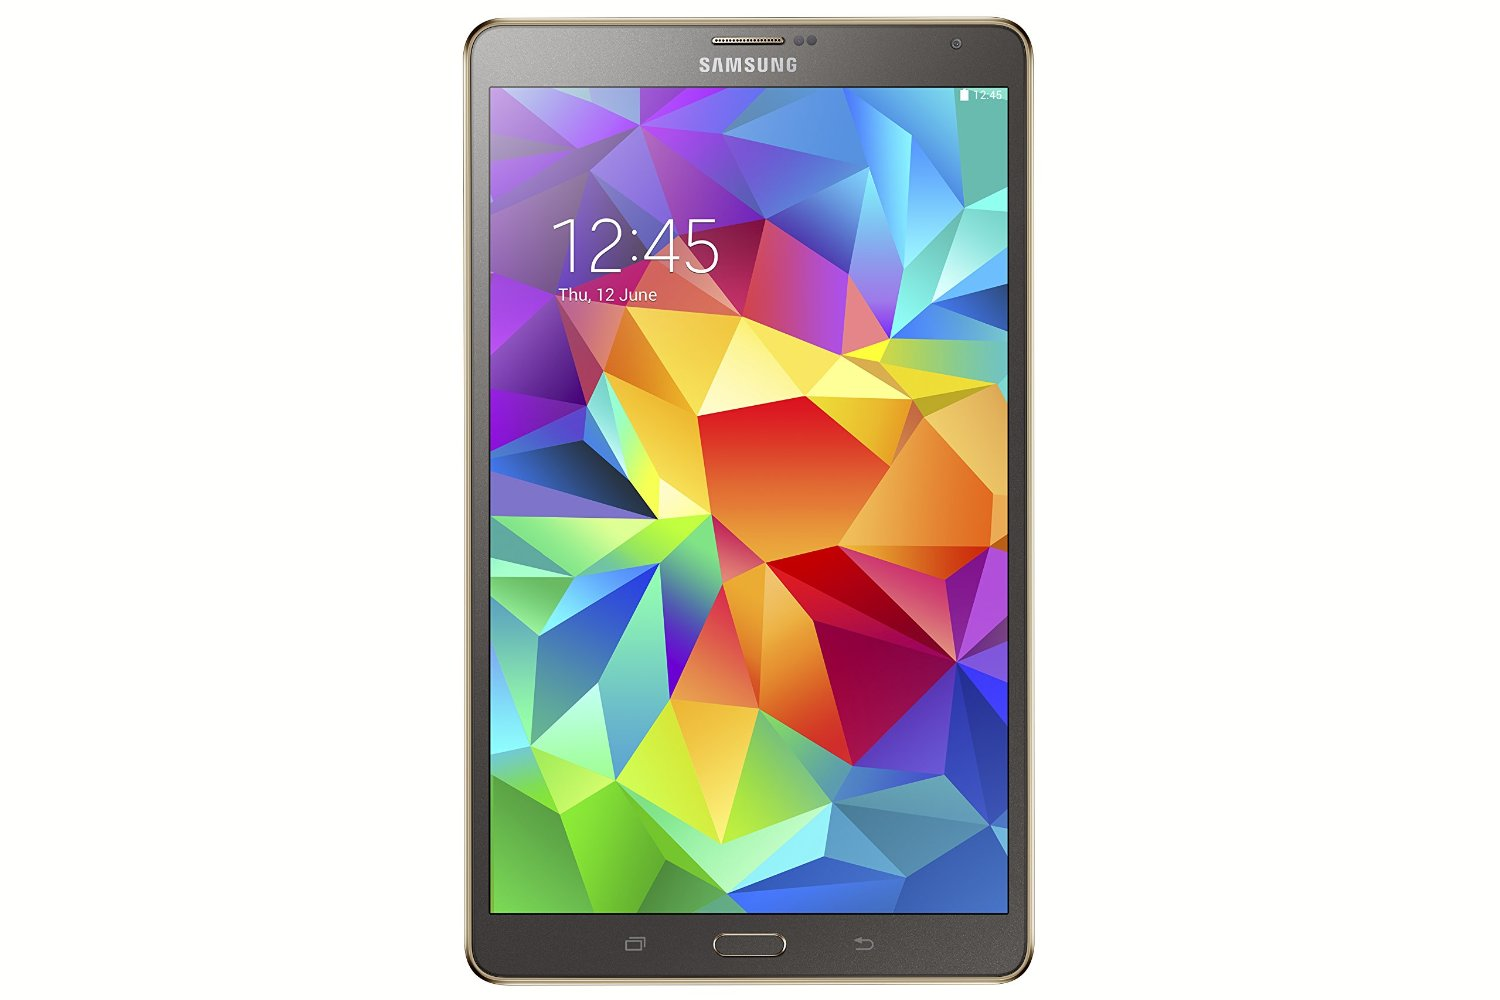 samsung galaxy tab s 8 4 lte android tablet sm t705 in. Black Bedroom Furniture Sets. Home Design Ideas